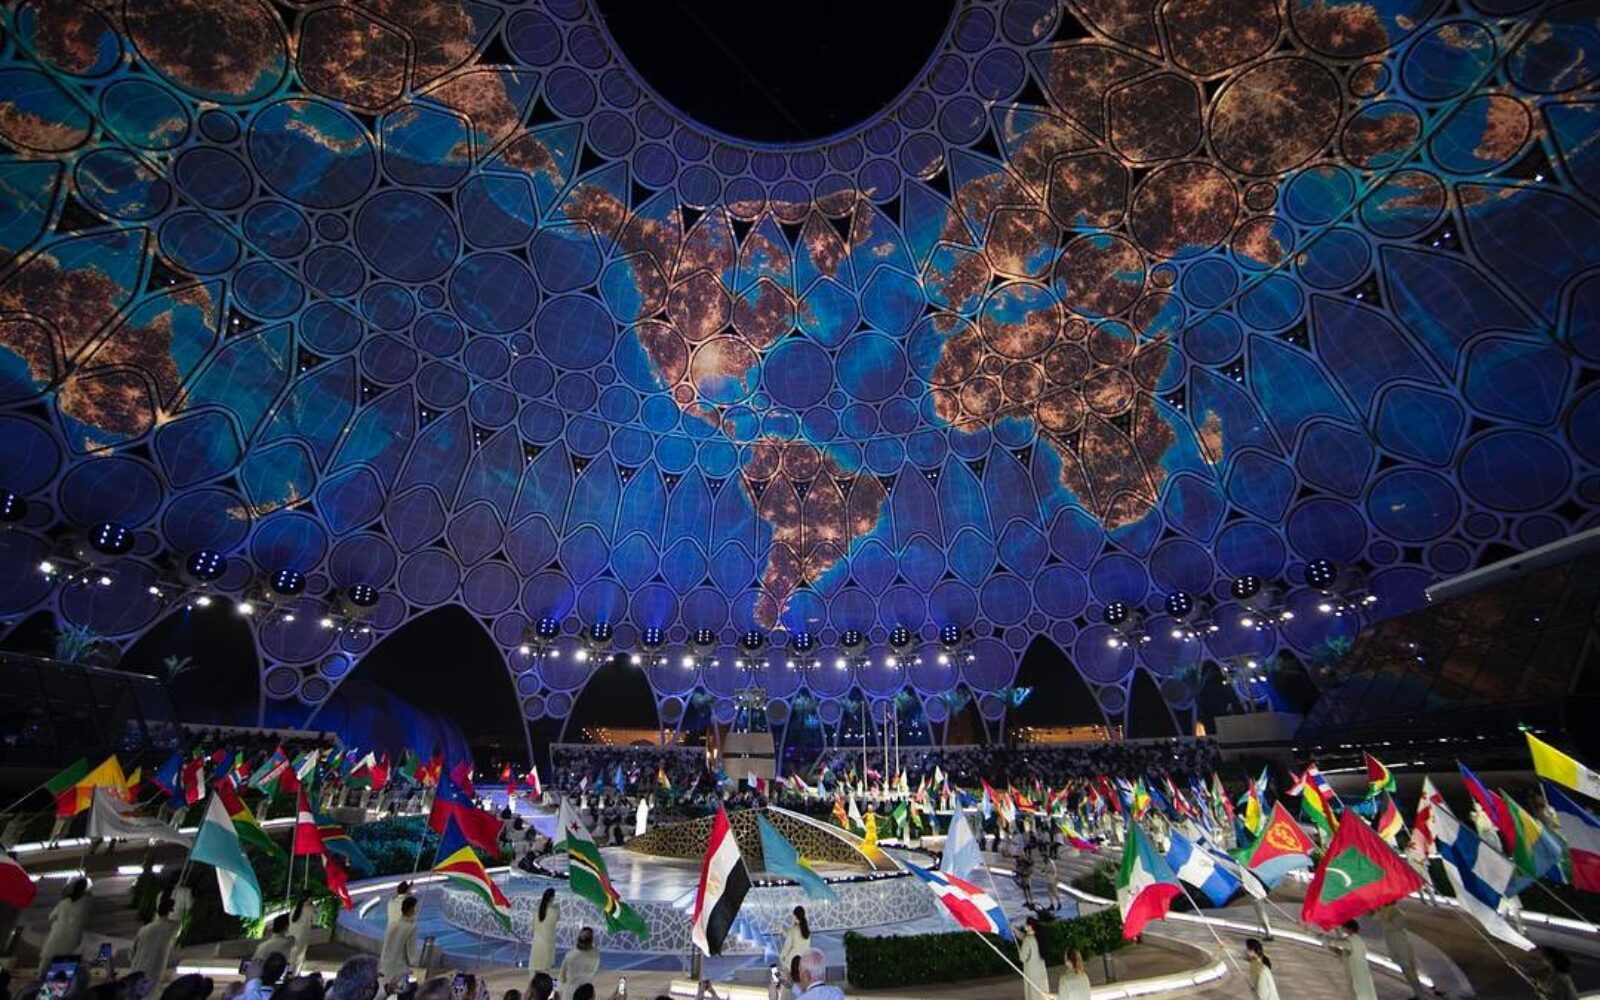 Expo 2020 Dubai Opening Ceremony; Free Tickets When You Book With Emaar Hospitality Group Hotels